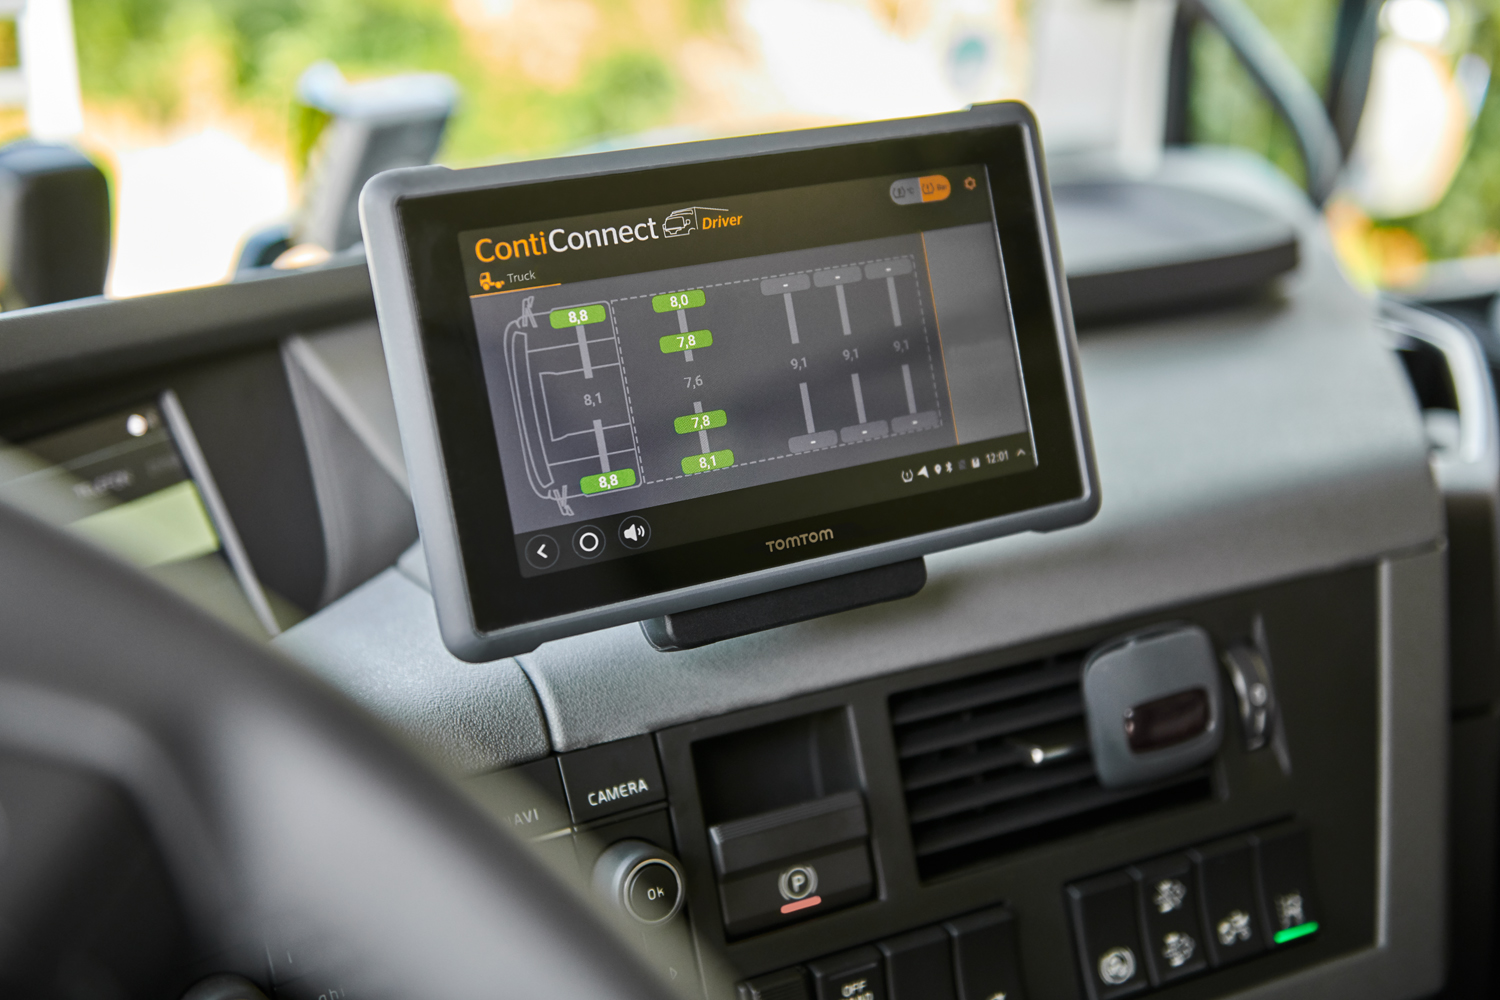 ContiConnect_Display_TomTom_2_Web